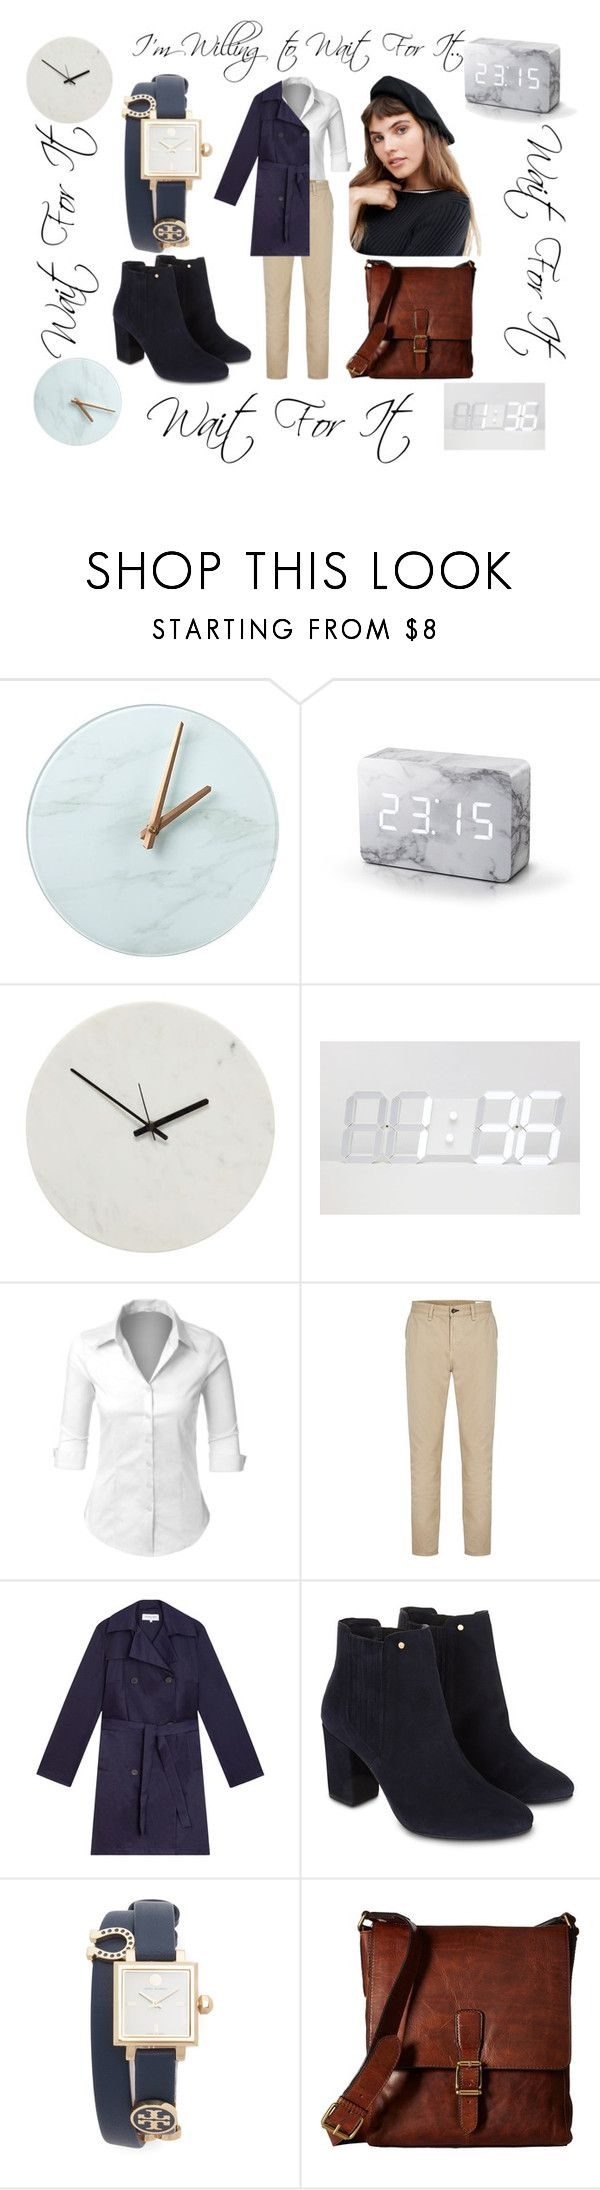 """Wait For It"" by gryffindor-designer ❤ liked on Polyvore featuring Gingko Electronics, Holly's House, LE3NO, rag & bone, Gérard Darel, Monsoon, Tory Burch, Frye and ALDO"